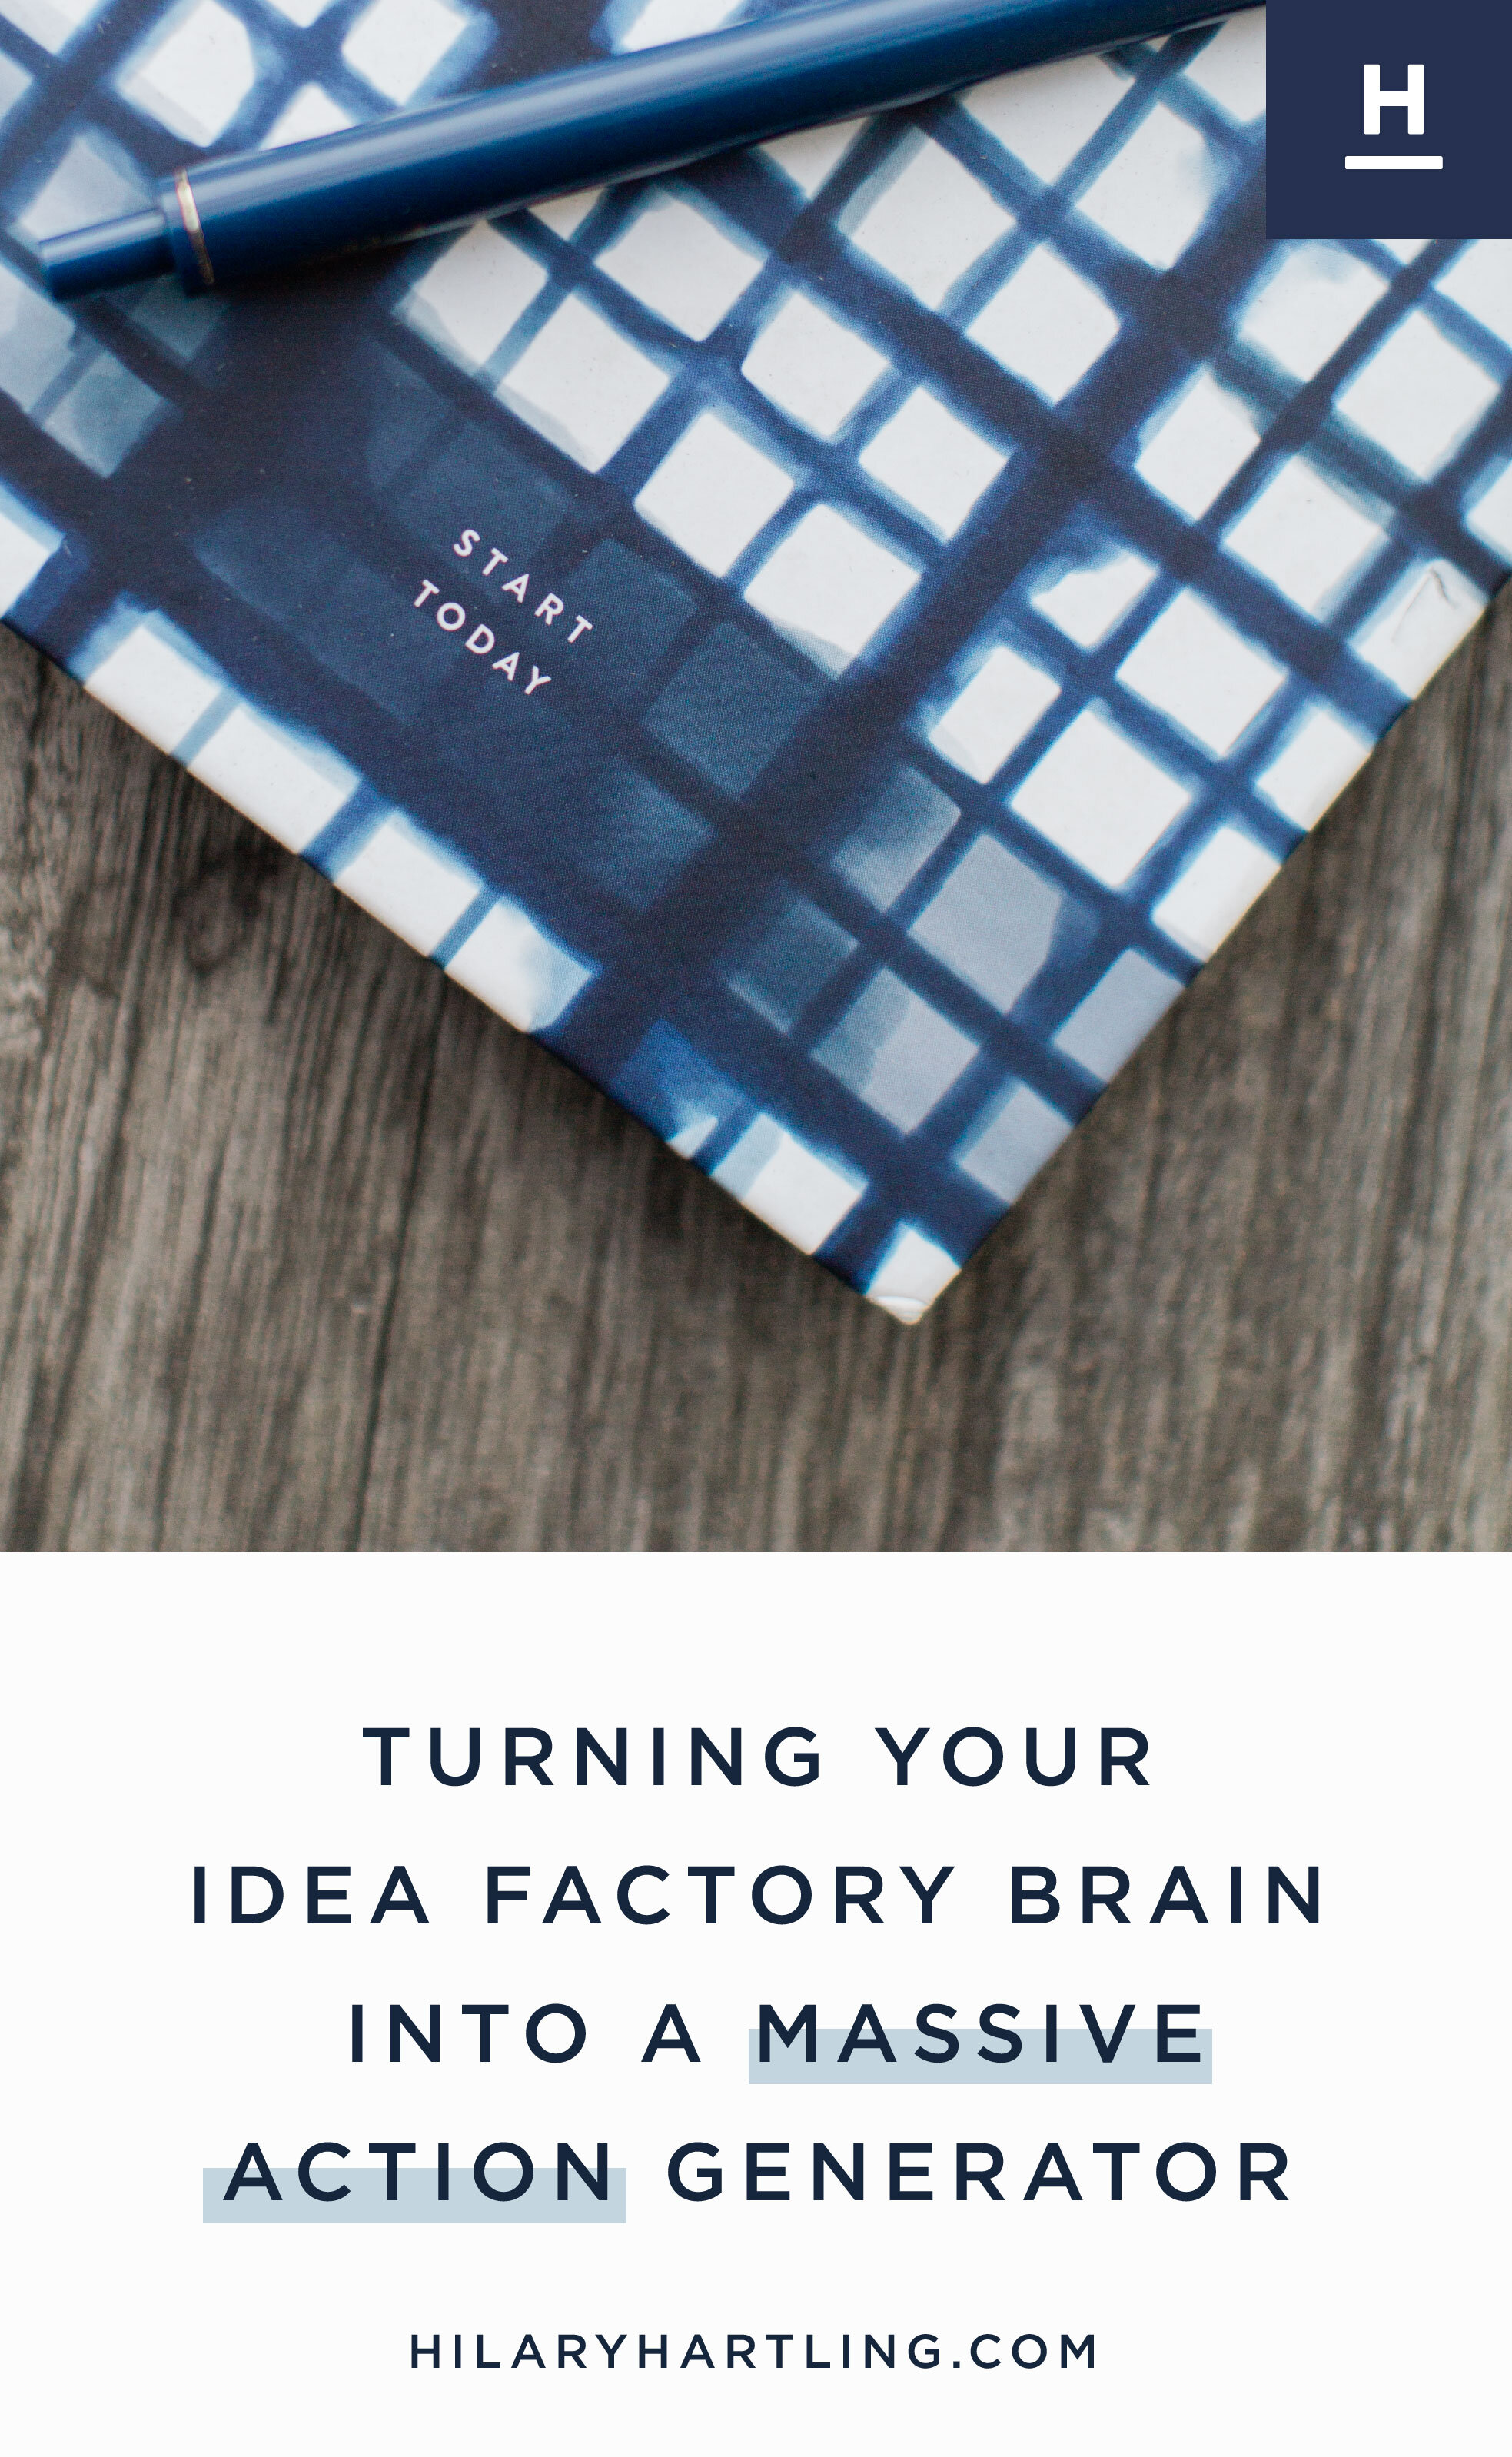 Turning-Your--Idea-Factory-Brain--Into-A-Massive--Action-Generator.jpg